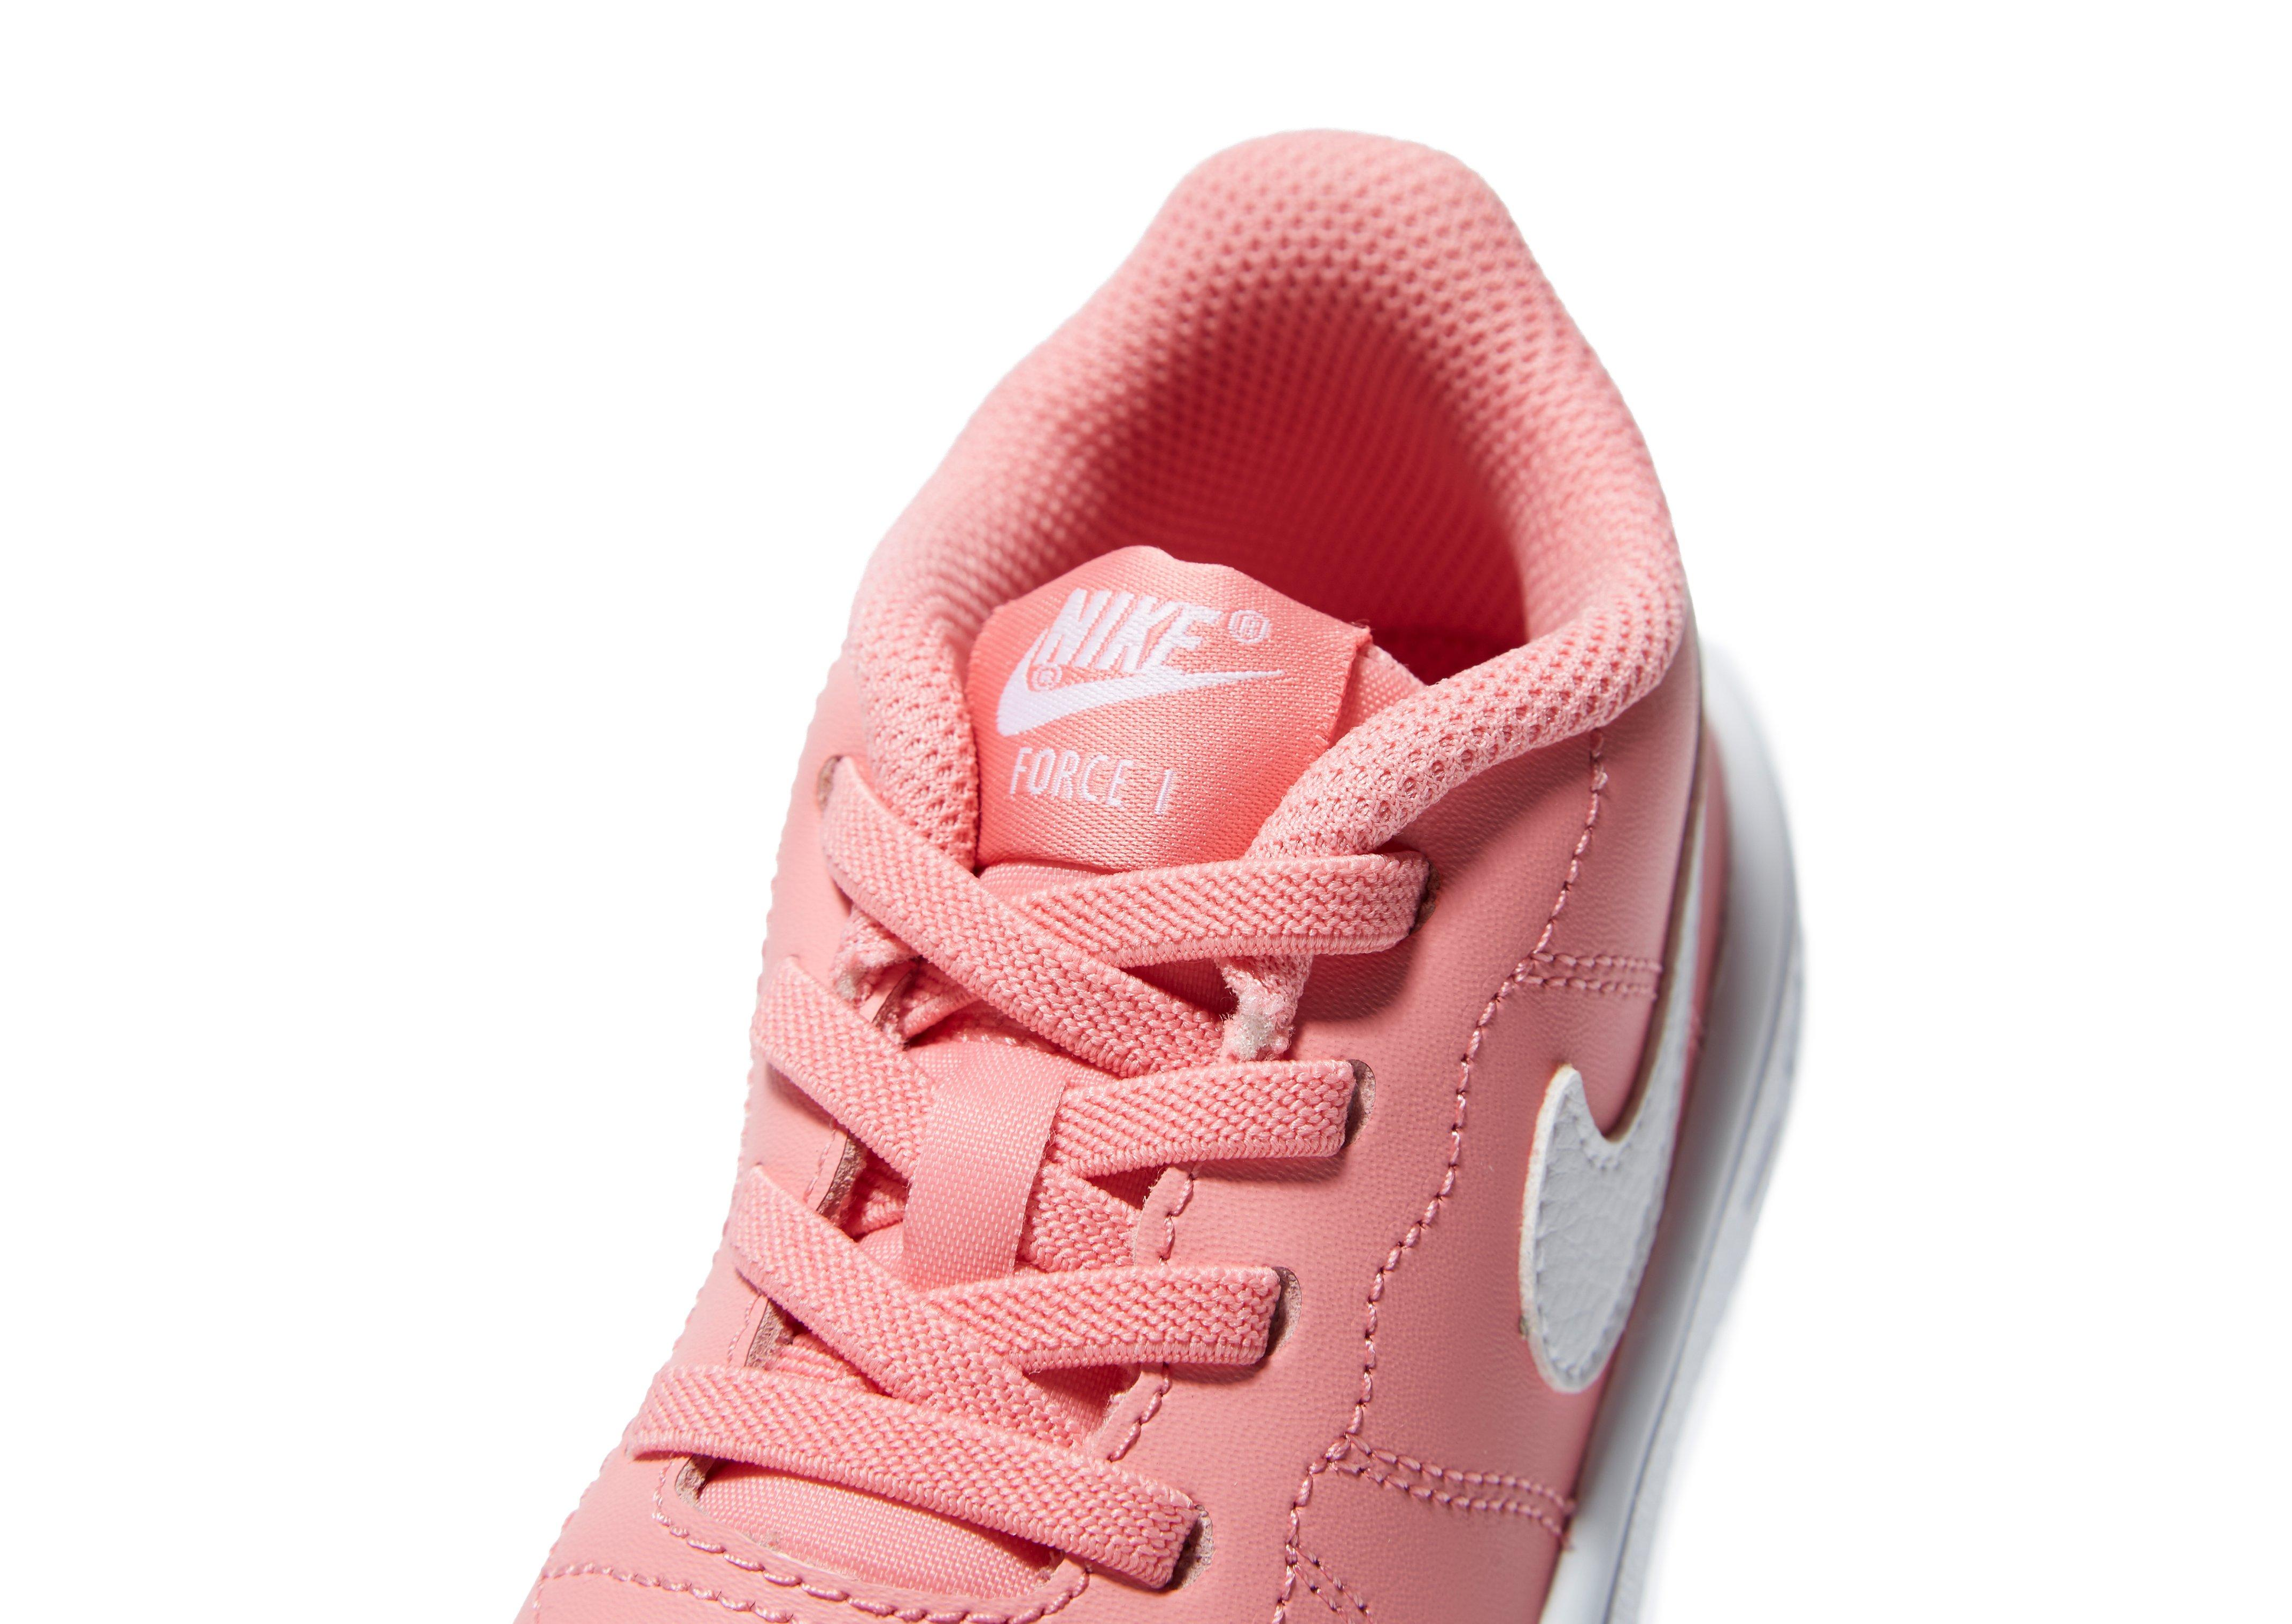 cheaper f4007 fd113 Look at the stitching of the shoe. These people buy the golf shoes for  looks only and never nike sb low pro stop to consider the effects golf  shoes have on ...